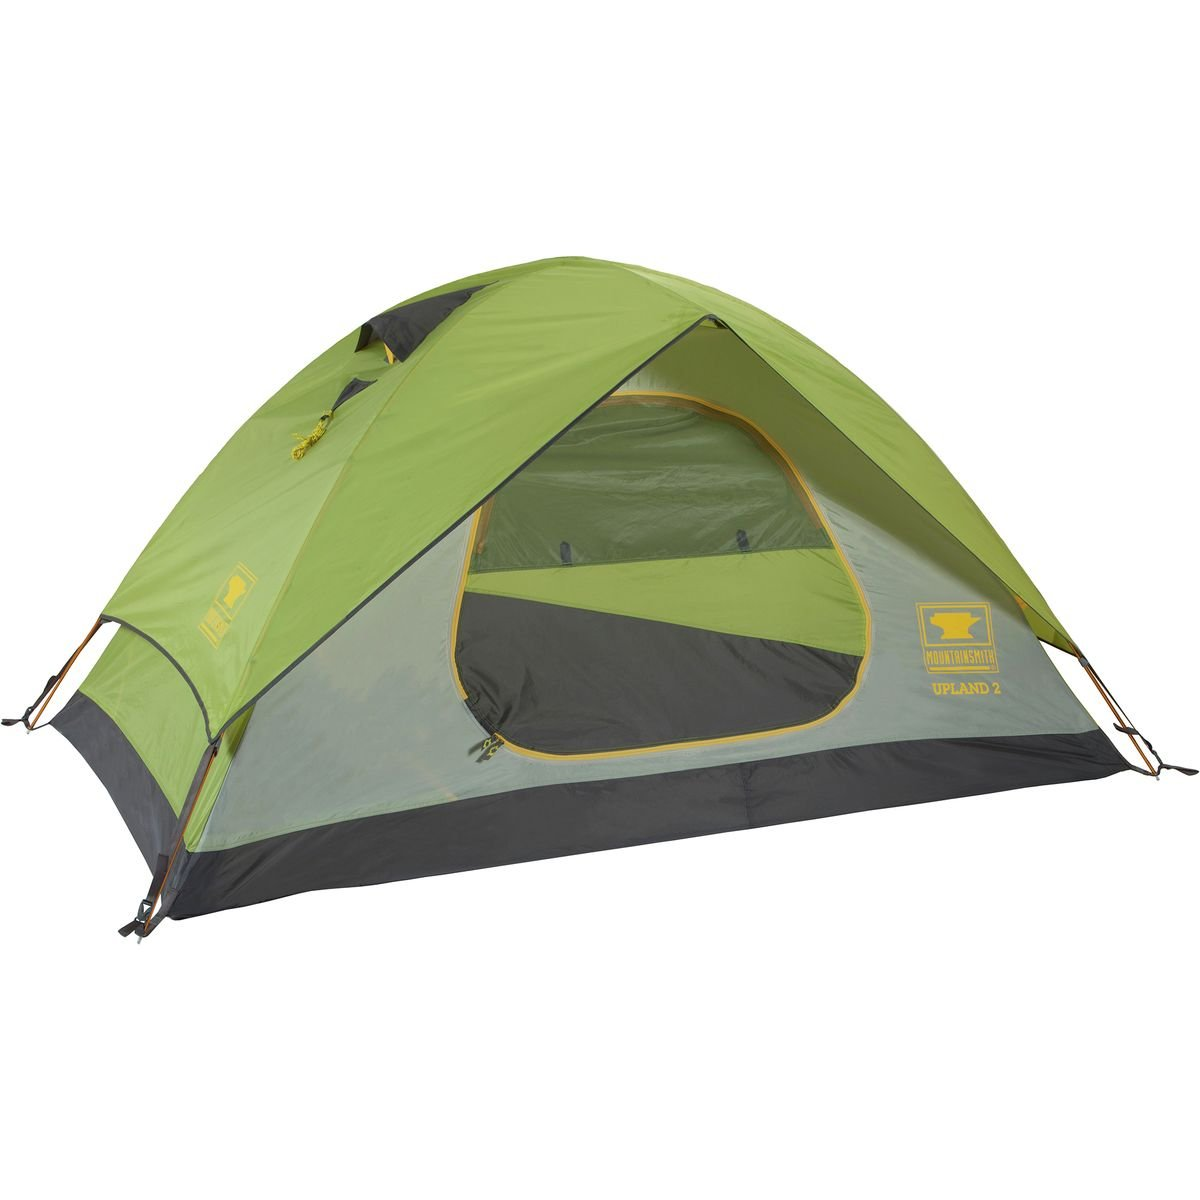 5. Mountainsmith Upland Tent